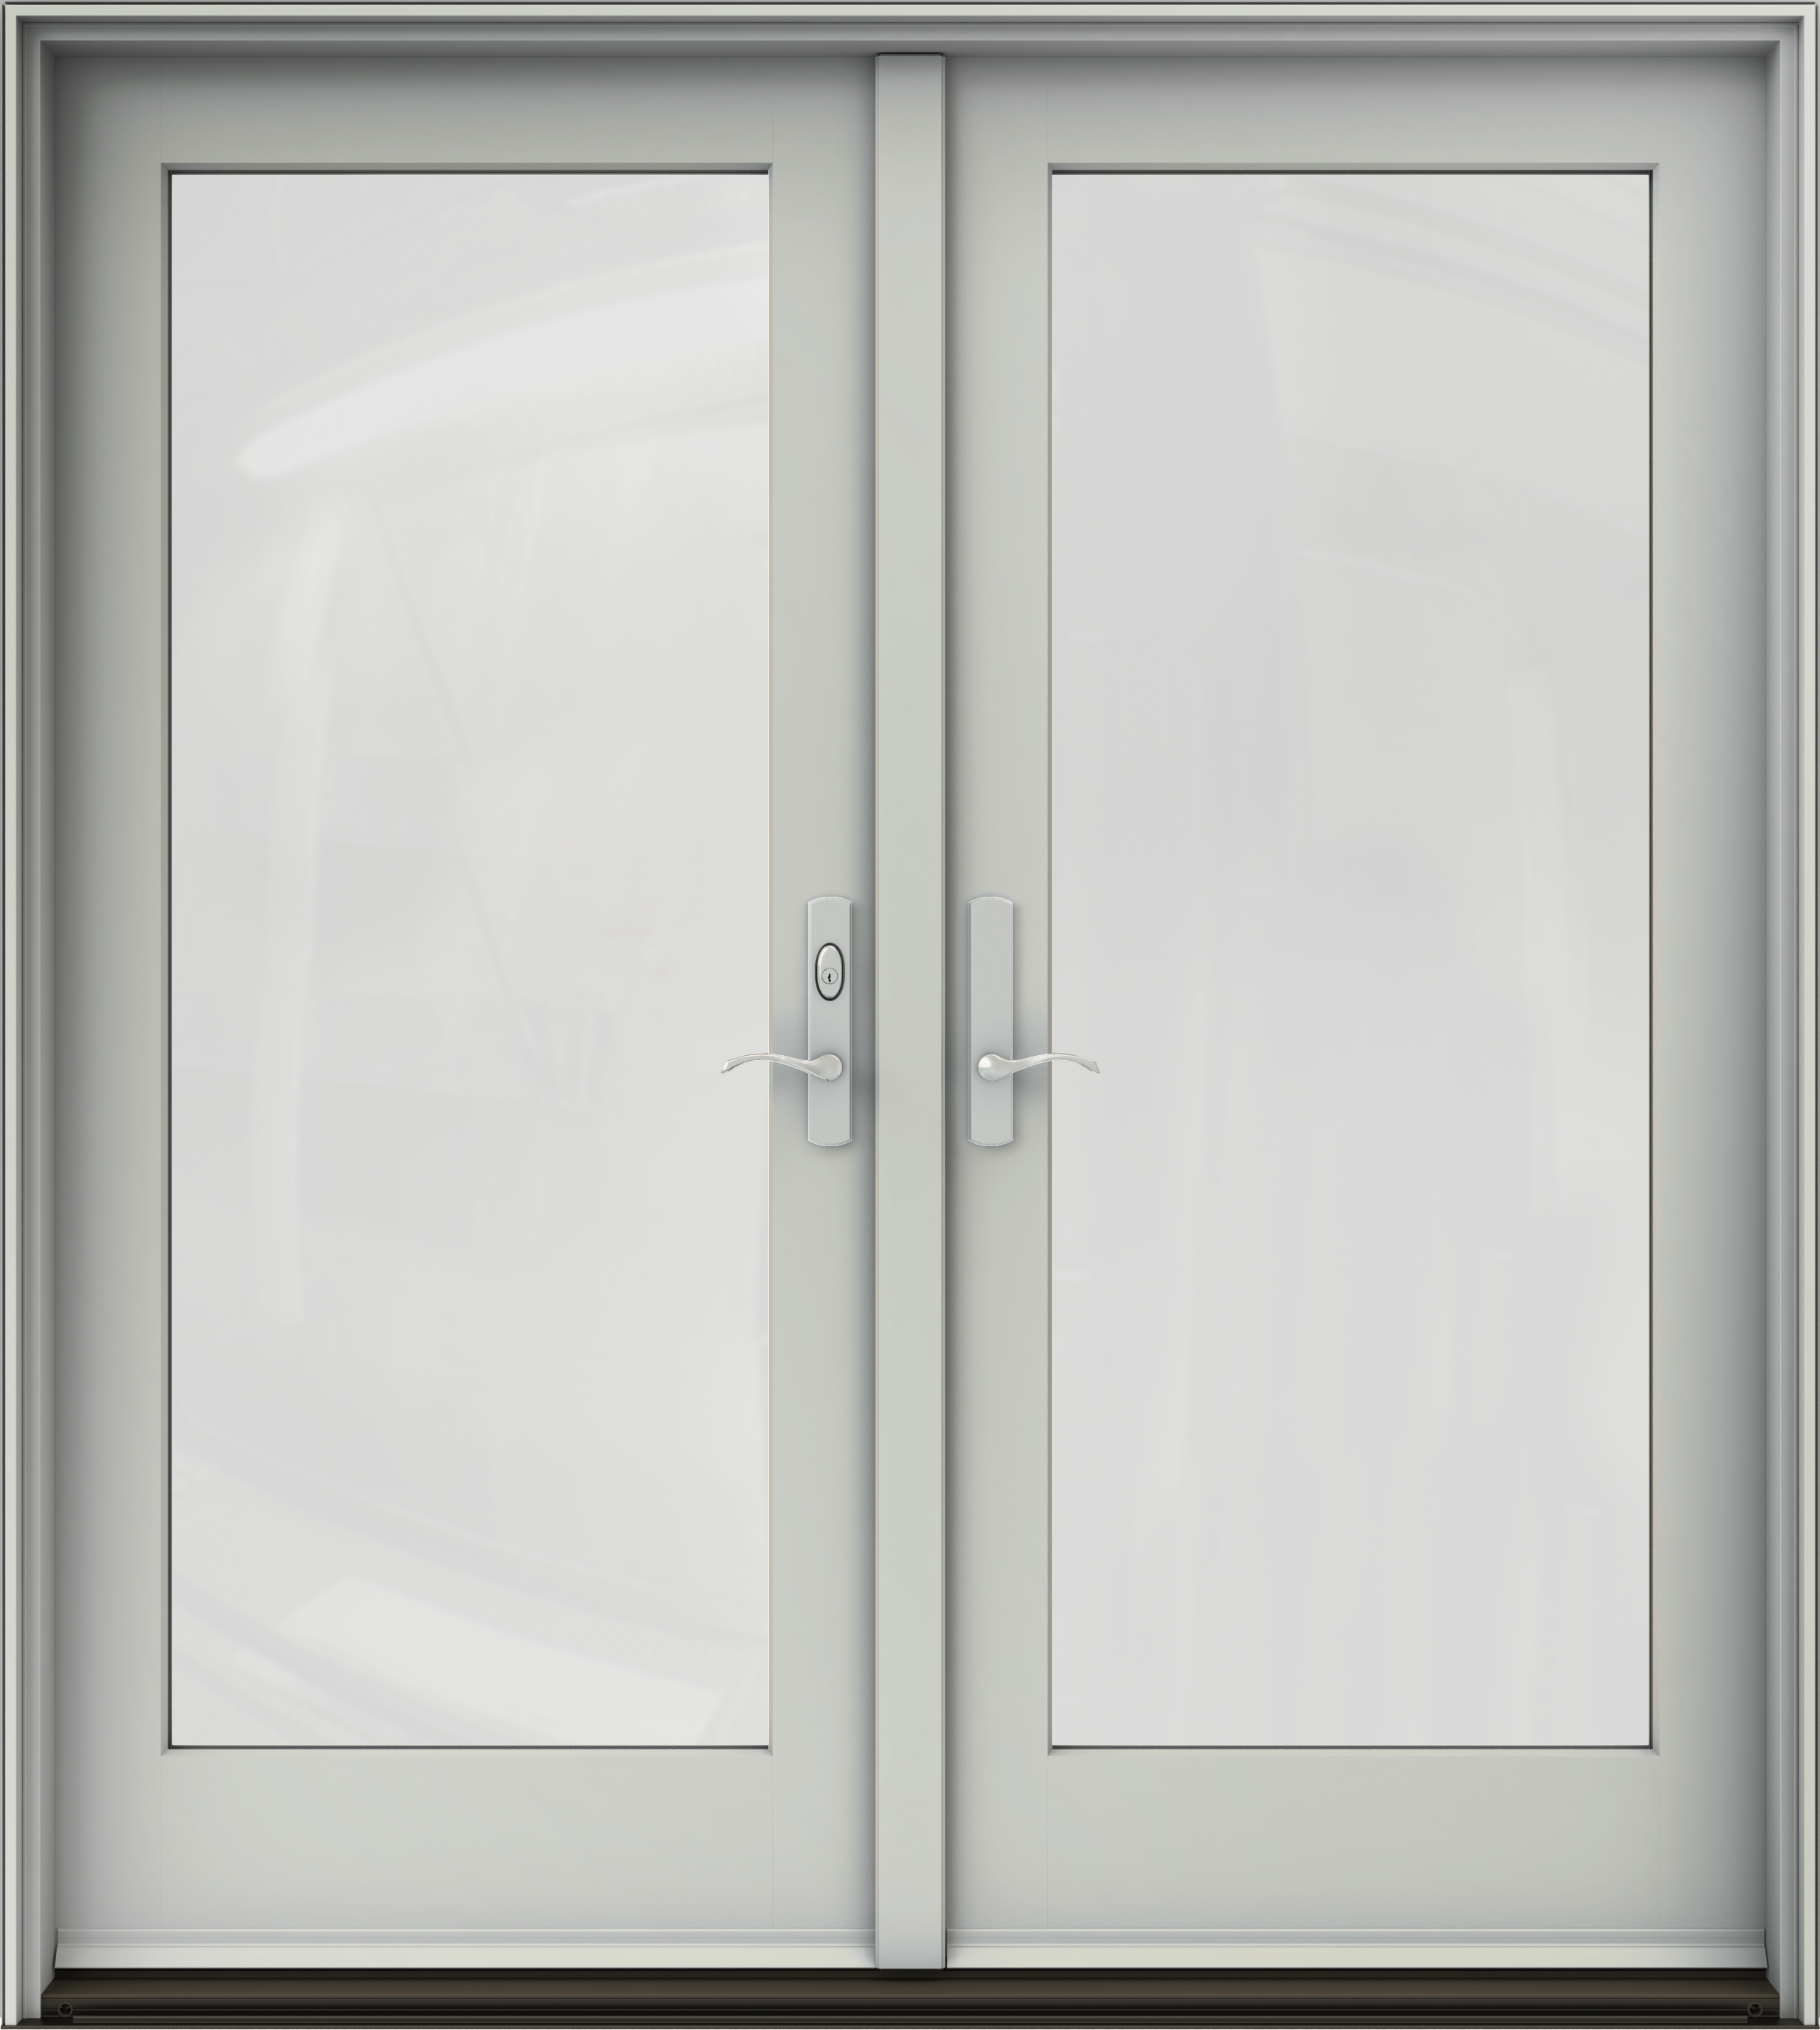 & W-4500 Clad-Wood Swinging Patio Doors | JELD-WEN Windows u0026 Doors